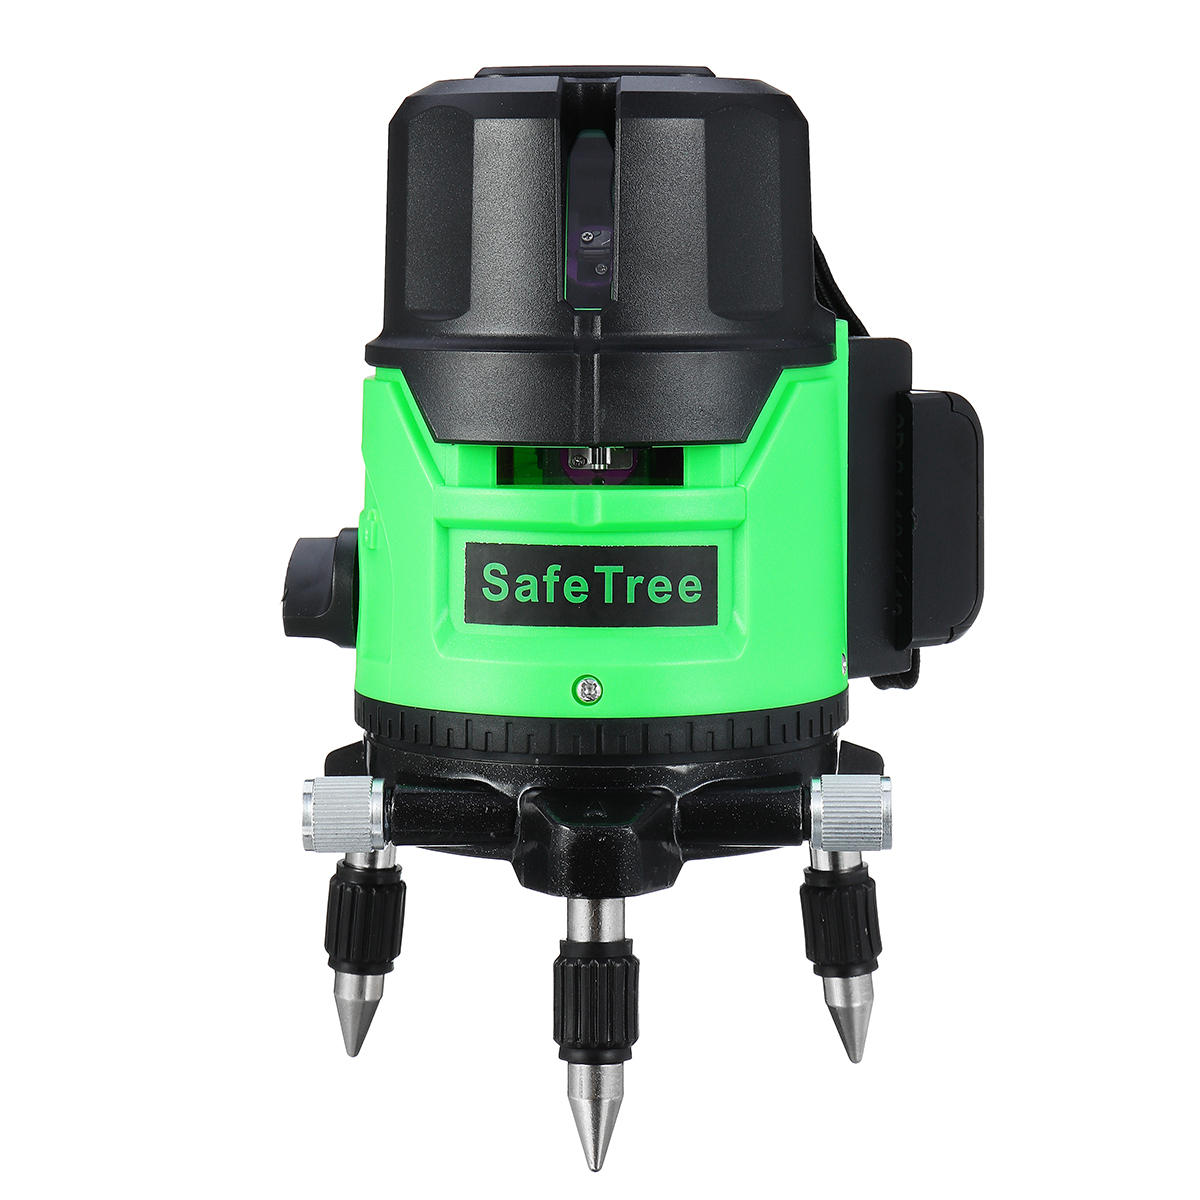 2/3/5 Line Green Laser Level Self-Leveling 360° Horizontal Vertical Measure  Tool